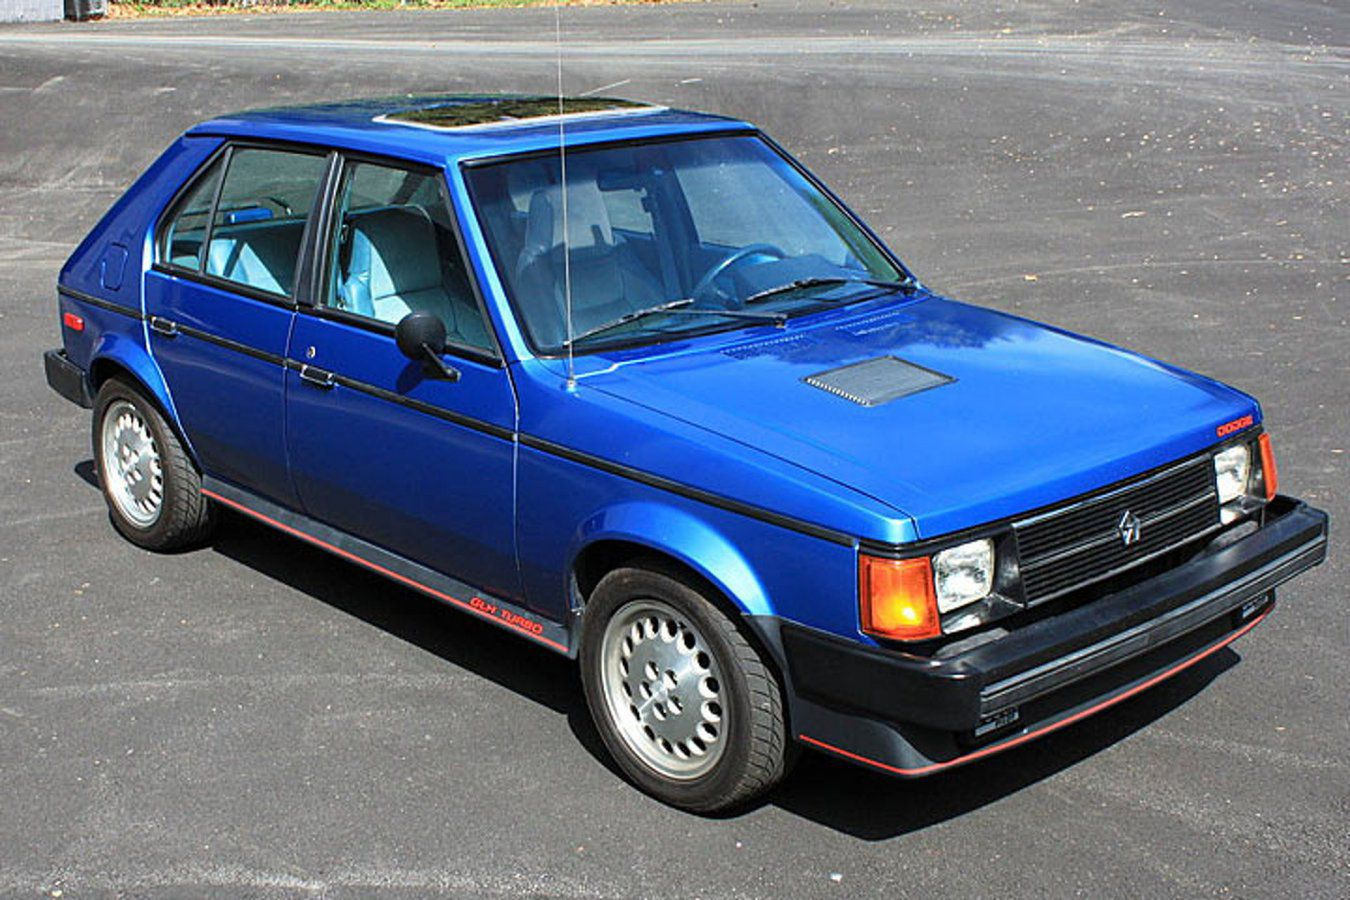 the-dodge-omni-glh-turbo-is-a-shelby-by-design.jpg